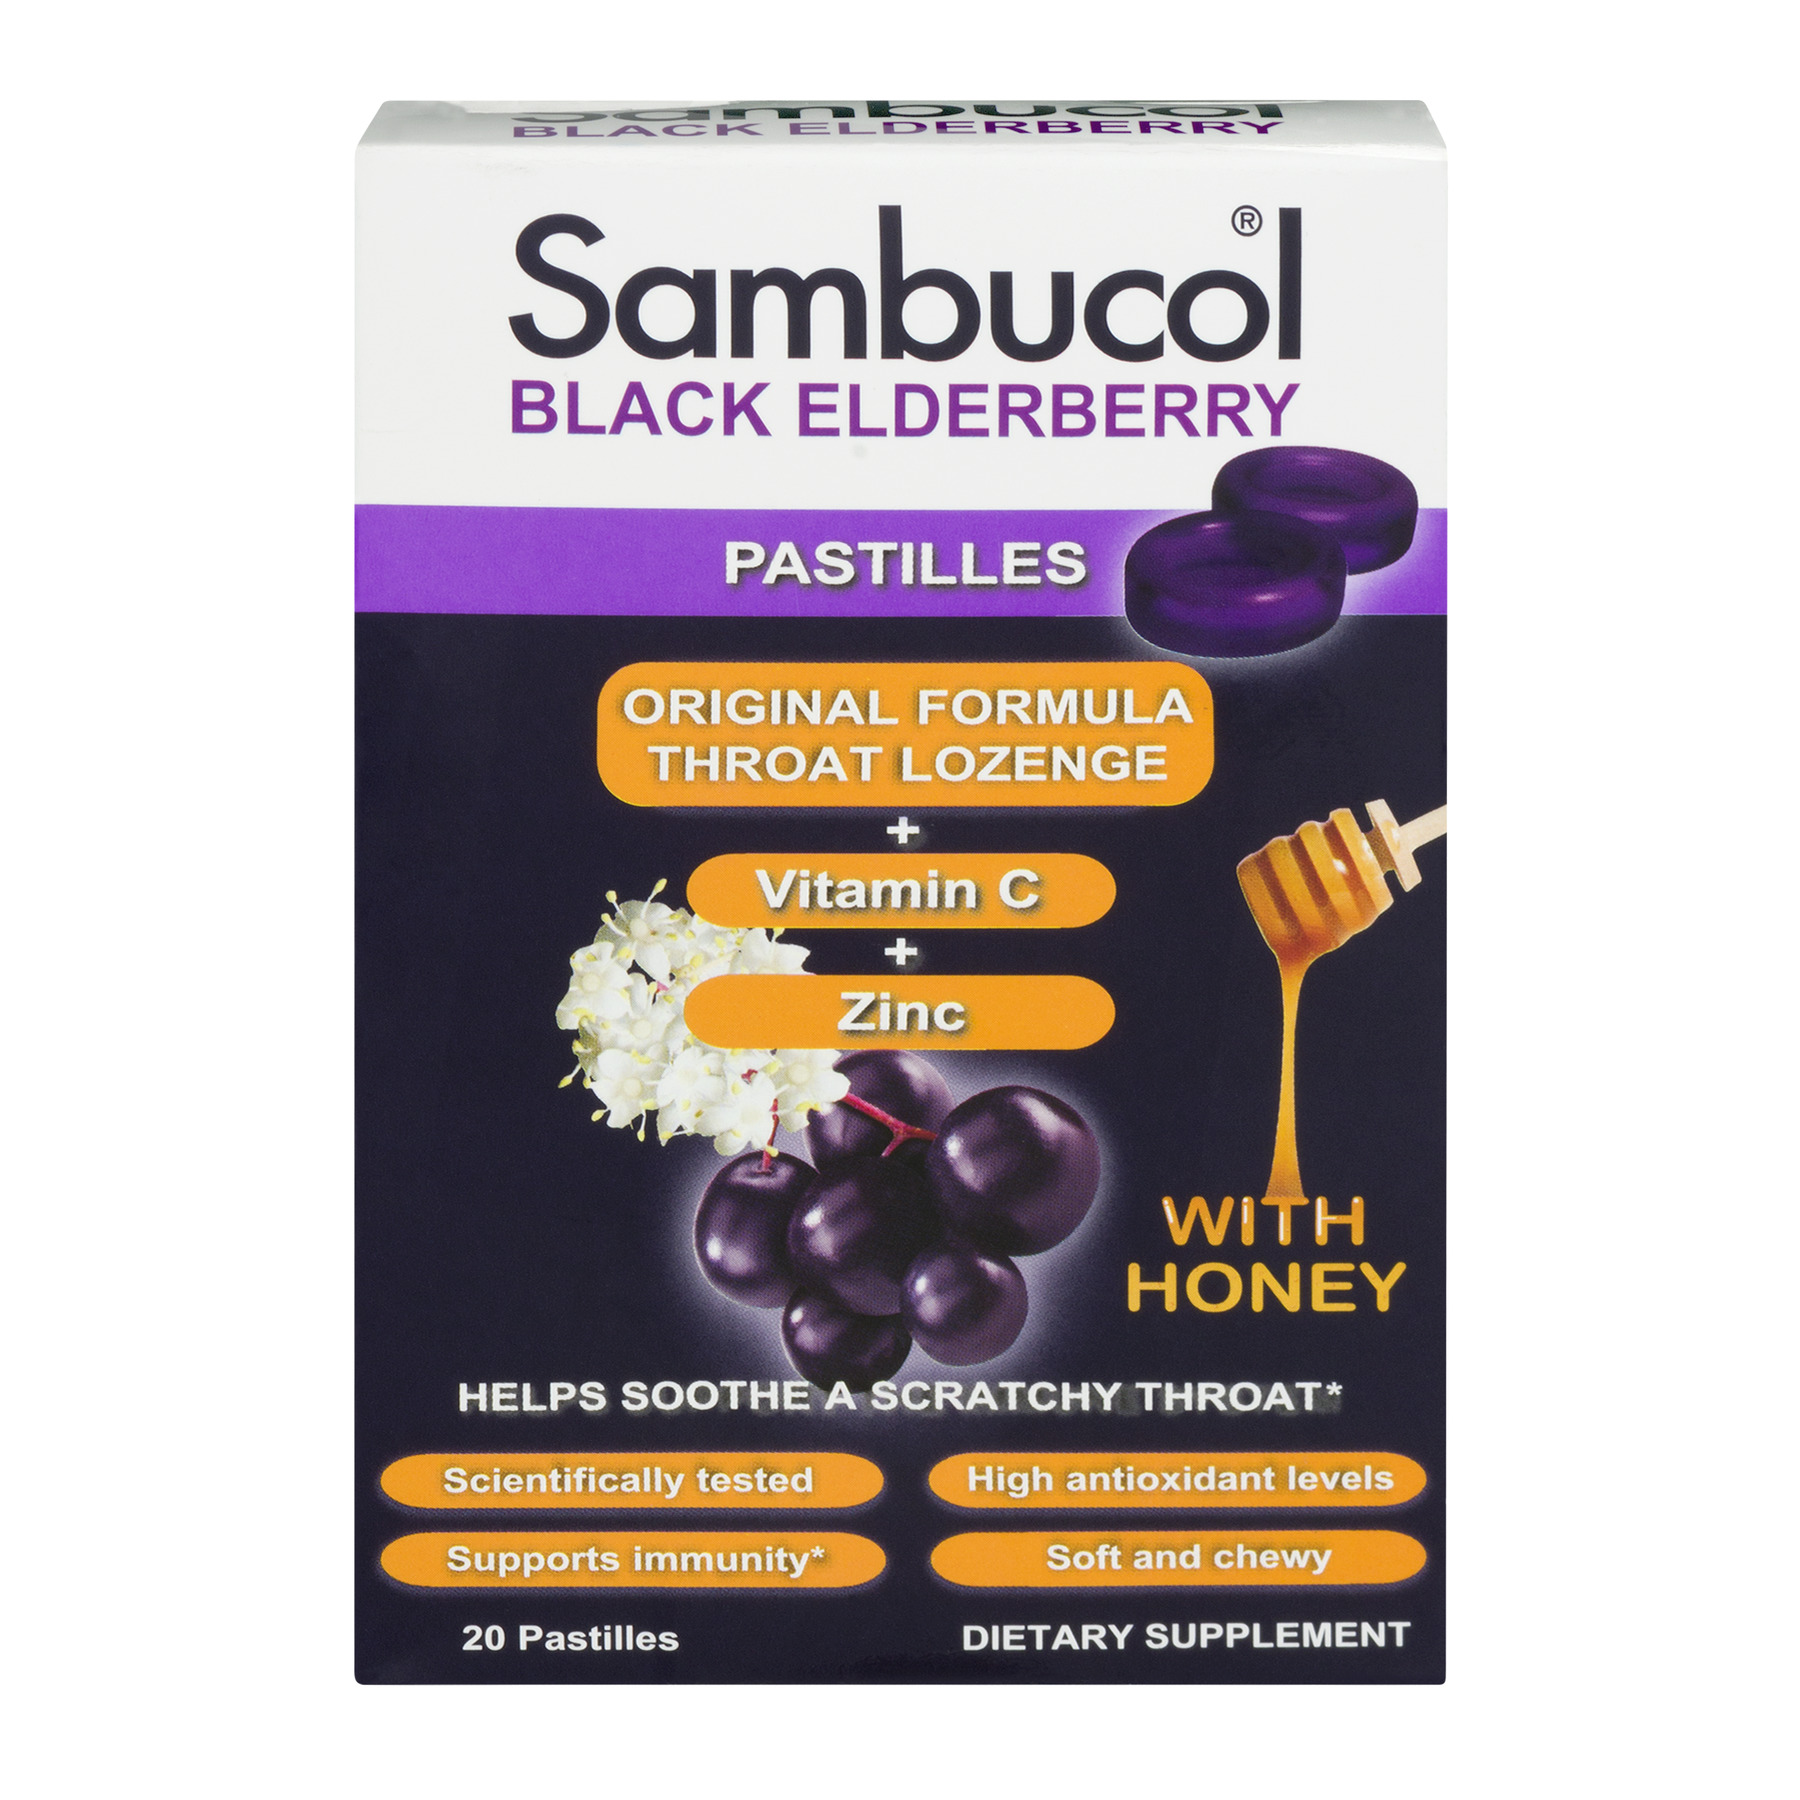 Sambucol Original Throat Lozenge + Vitamin C + Zinc Black Elderberry - 20 CT20.0 CT